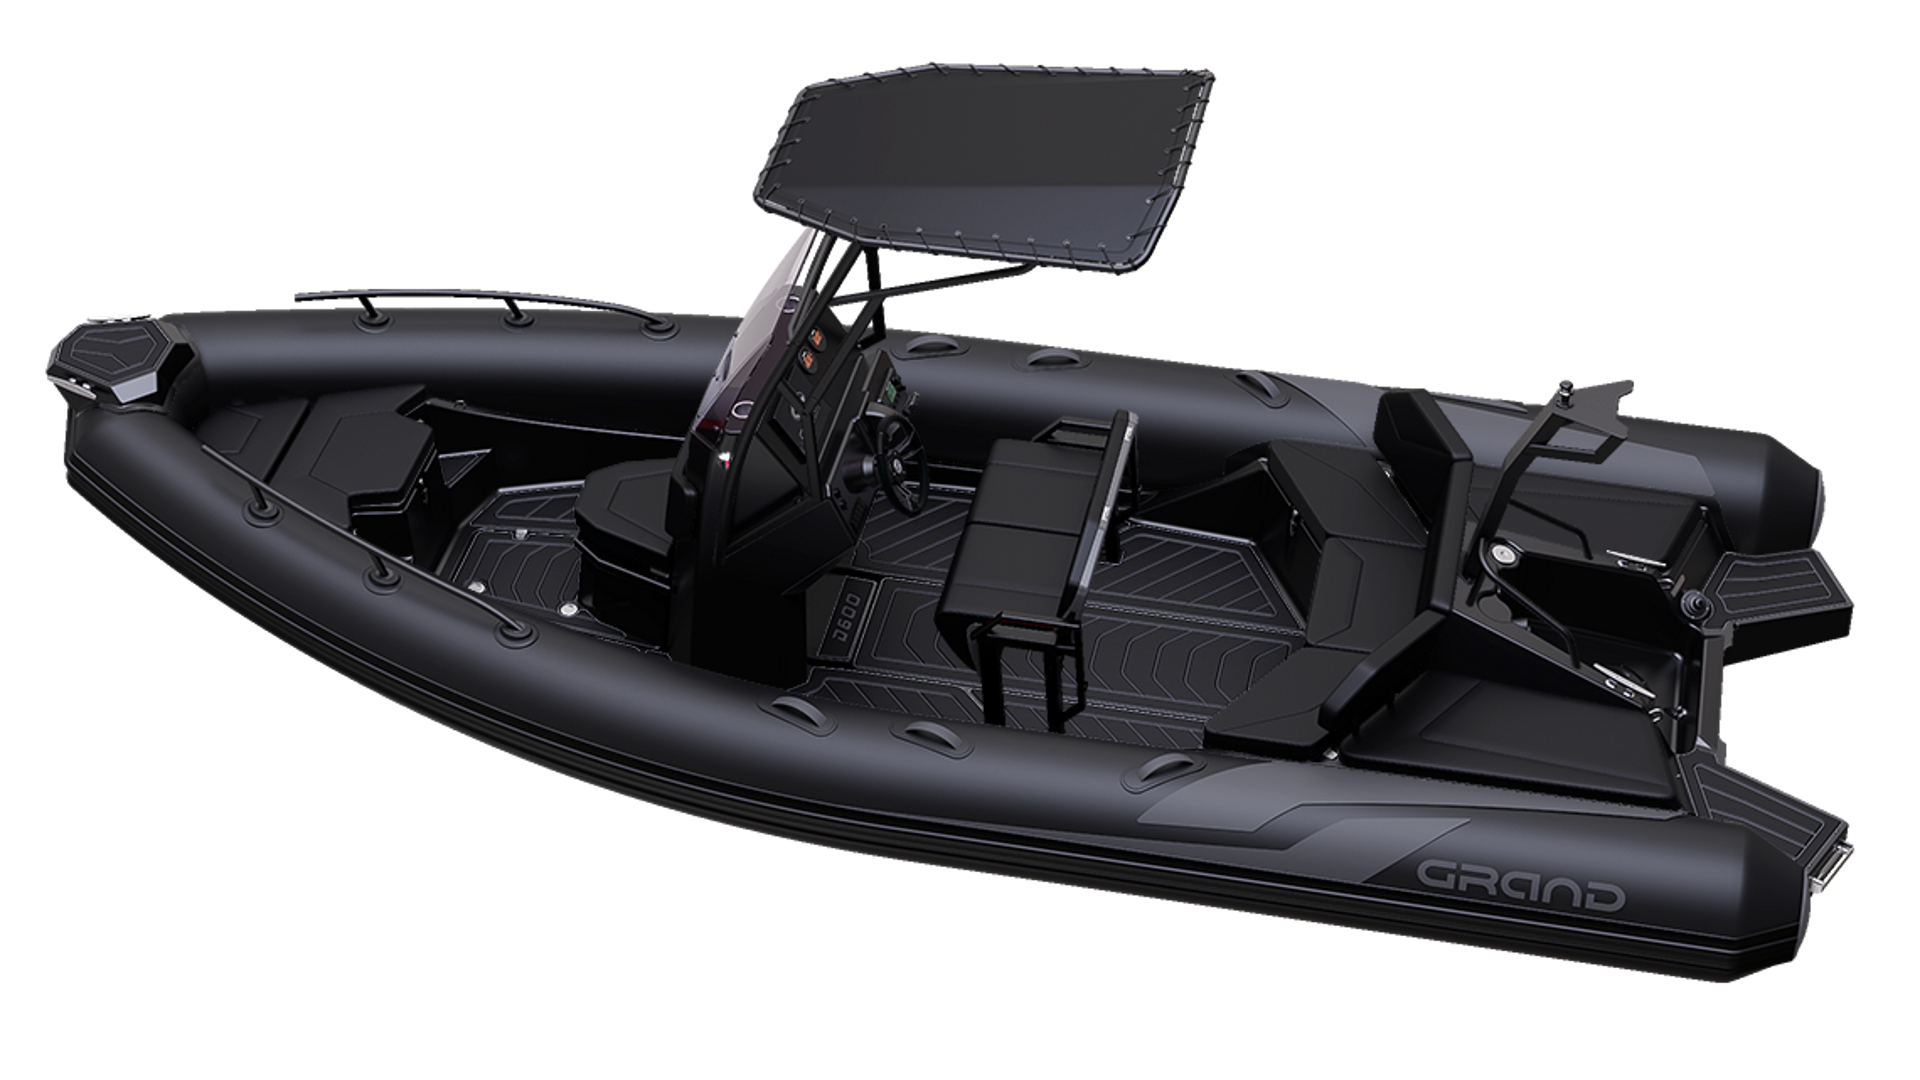 GRAND Drive Line, GRAND Drive, GRAND D600L, GRAND Drive D600 LUX, GRAND RIB, Pro RIB, надувная лодка GRAND Drive D600L, Rigid Inflatable Boats GRAND